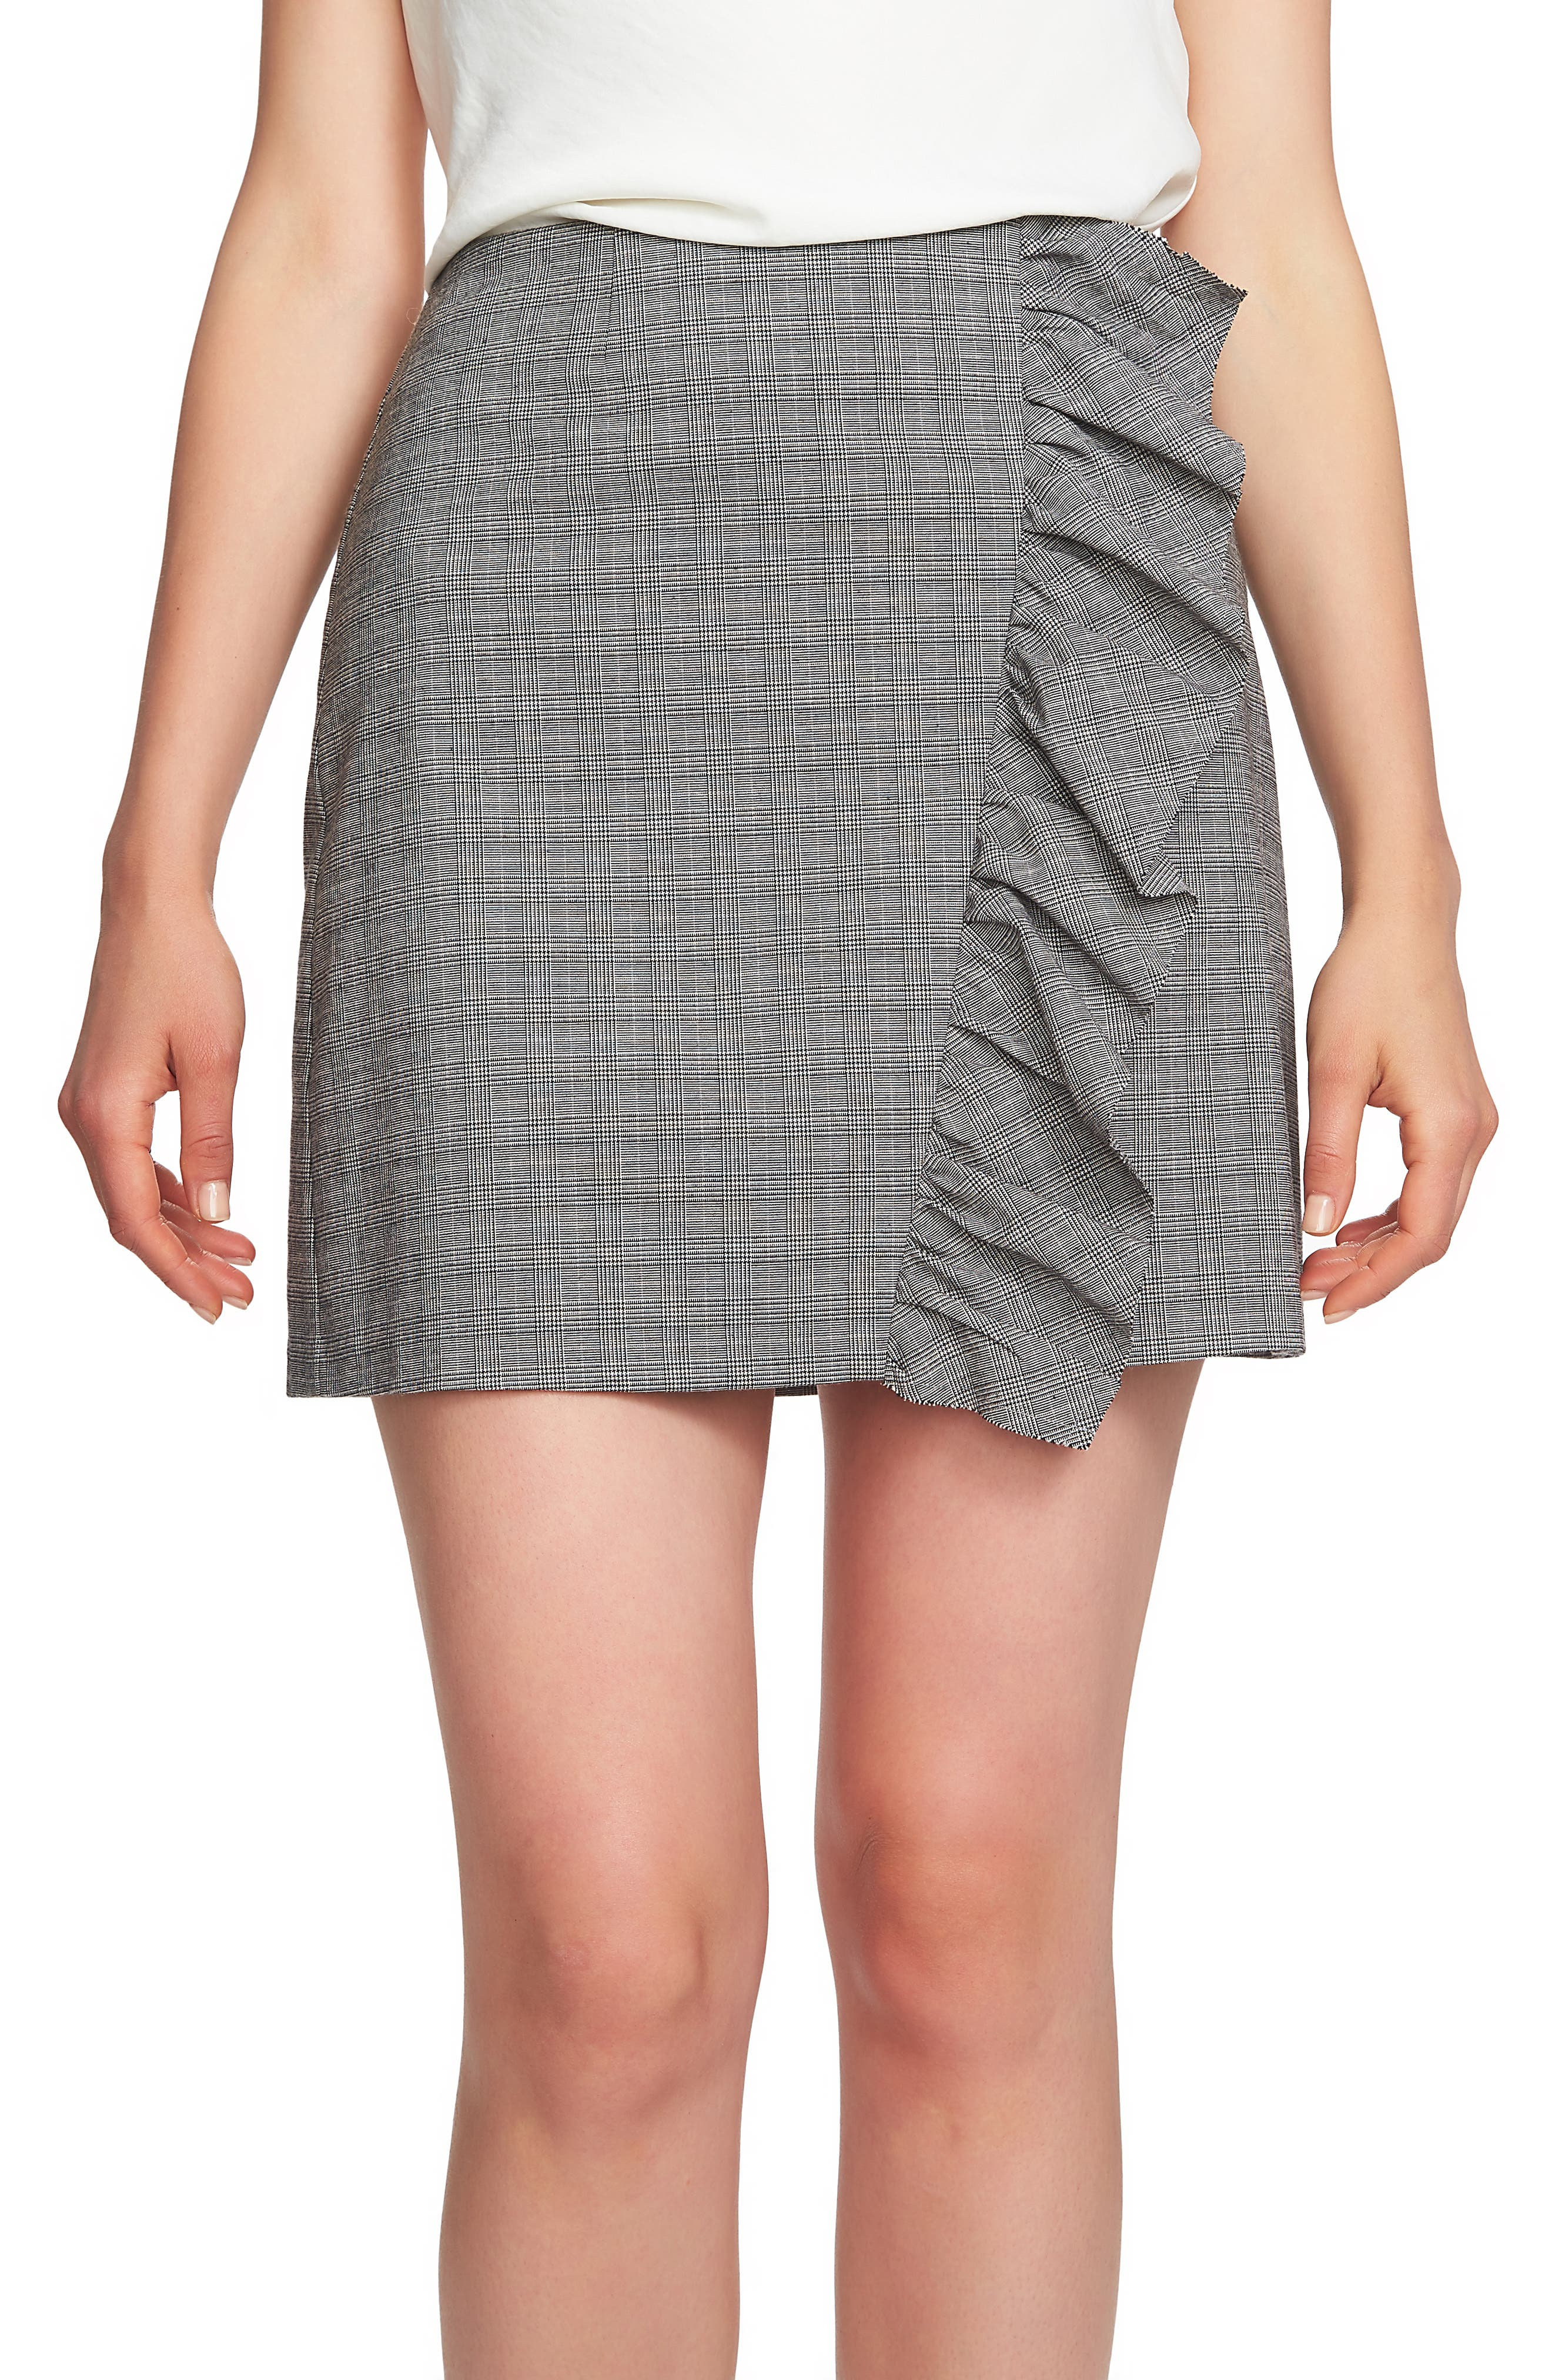 Glen Plaid Ruffle Plaid Miniskirt,                             Main thumbnail 1, color,                             006